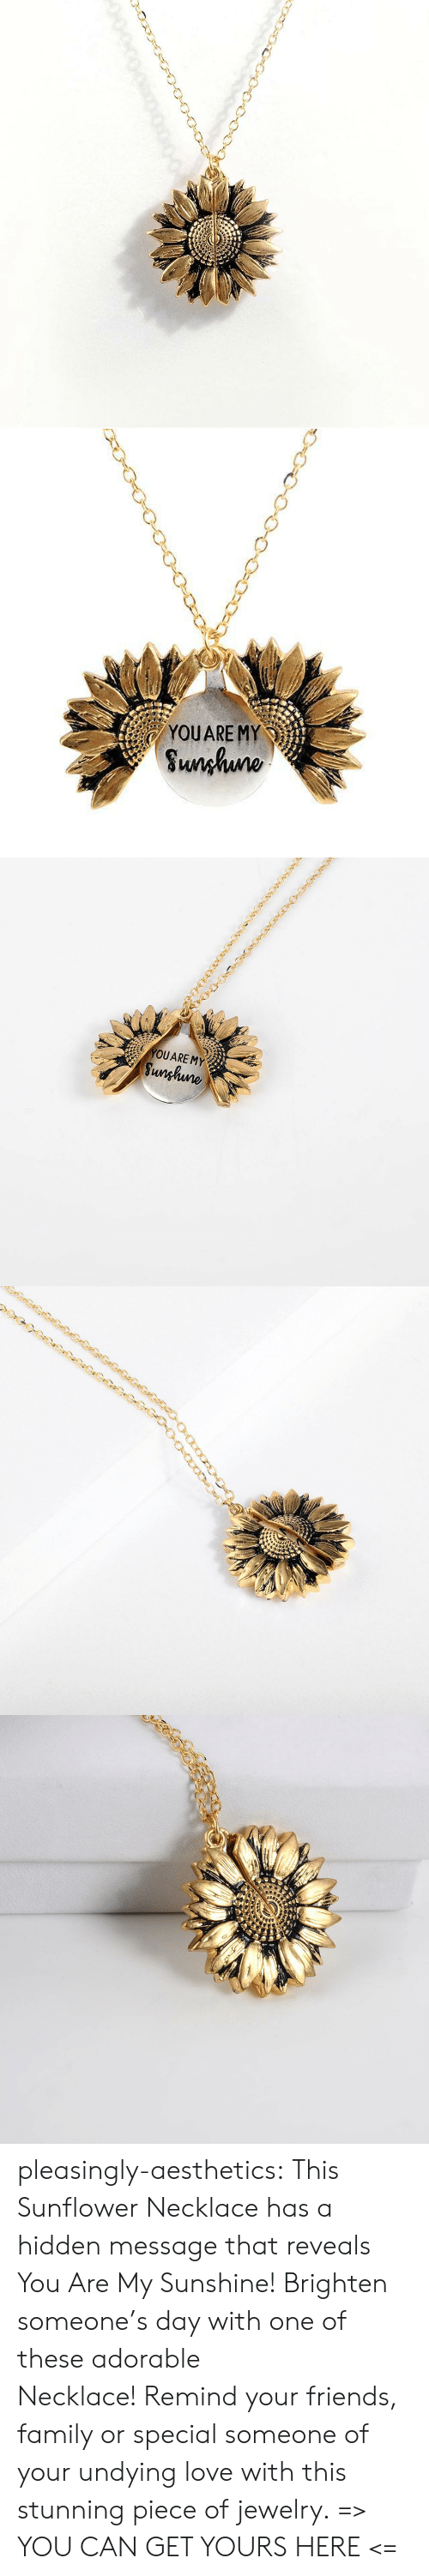 Family, Friends, and Love: YOUARE MY  Sunhuno   YOUARE MY  Sunghune pleasingly-aesthetics: This Sunflower Necklace has a hidden message that reveals You Are My Sunshine! Brighten someone's day with one of these adorable Necklace!Remind your friends, family or special someone of your undying love with this stunning piece of jewelry. => YOU CAN GET YOURS HERE <=